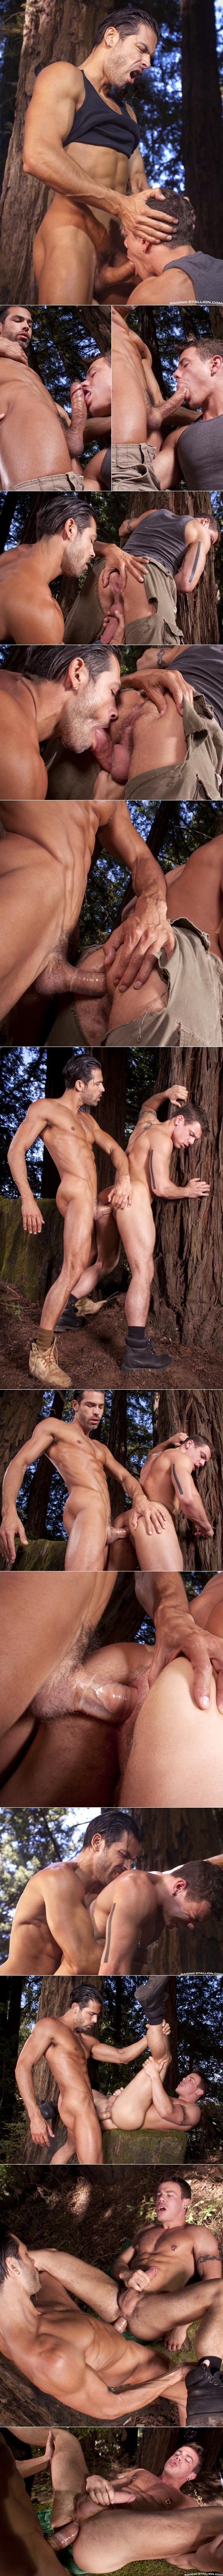 """Raging Stallion: Jesse Santana gets fucked by D.O. in """"The Woods: Part 2"""""""